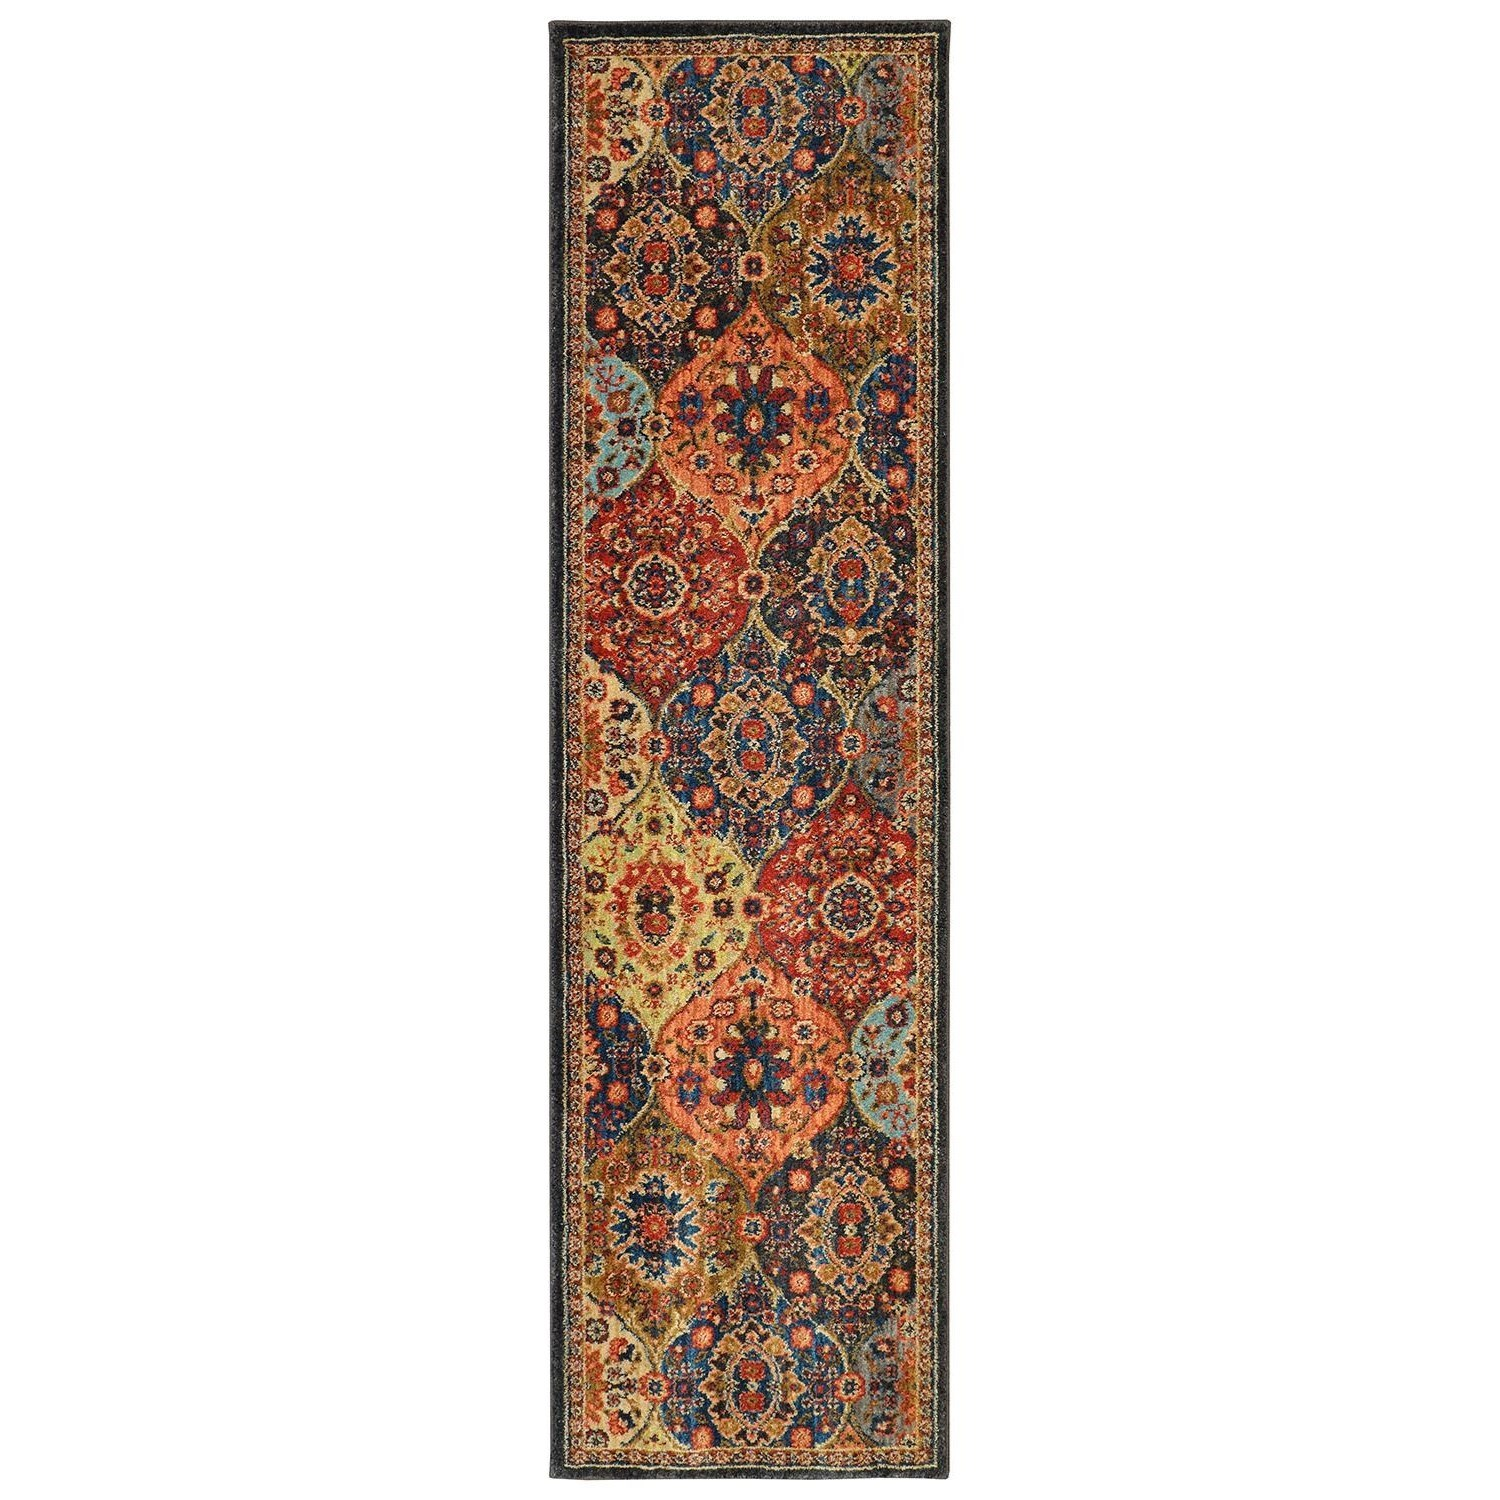 2'x3' Rectangle Ornamental Area Rug